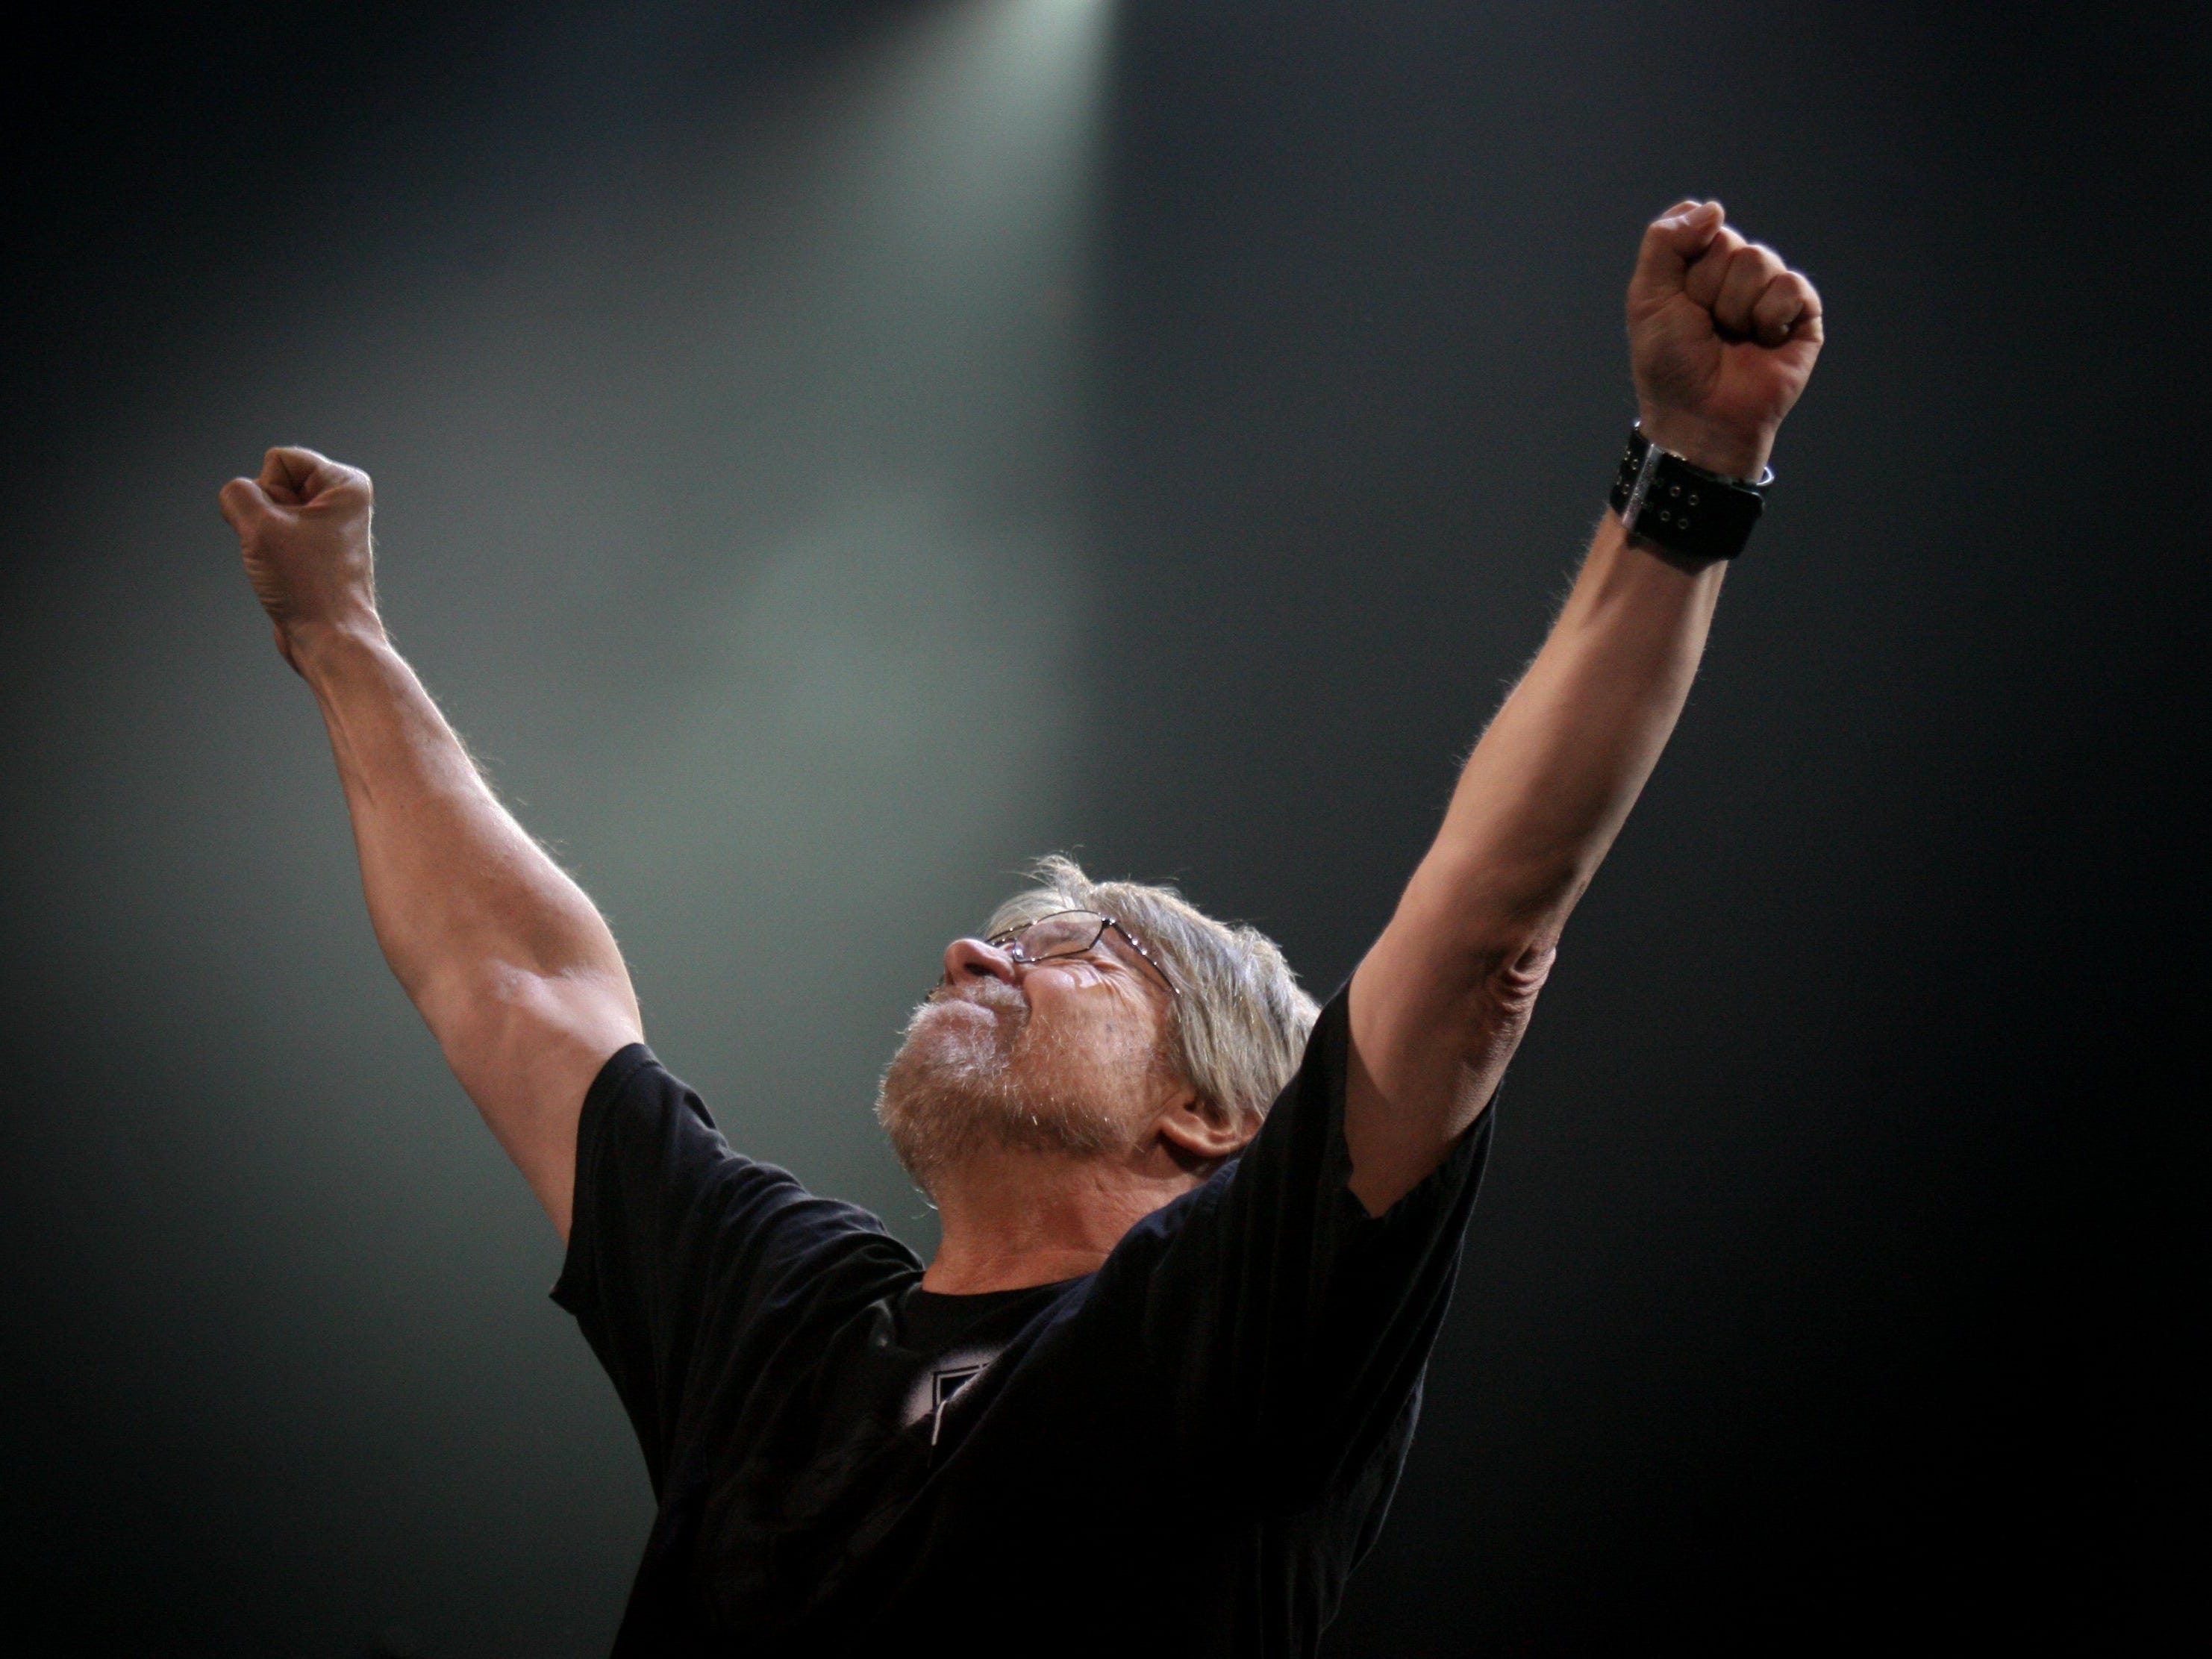 Bob Seger announces final tour dates; he's retiring from the road after 56 years